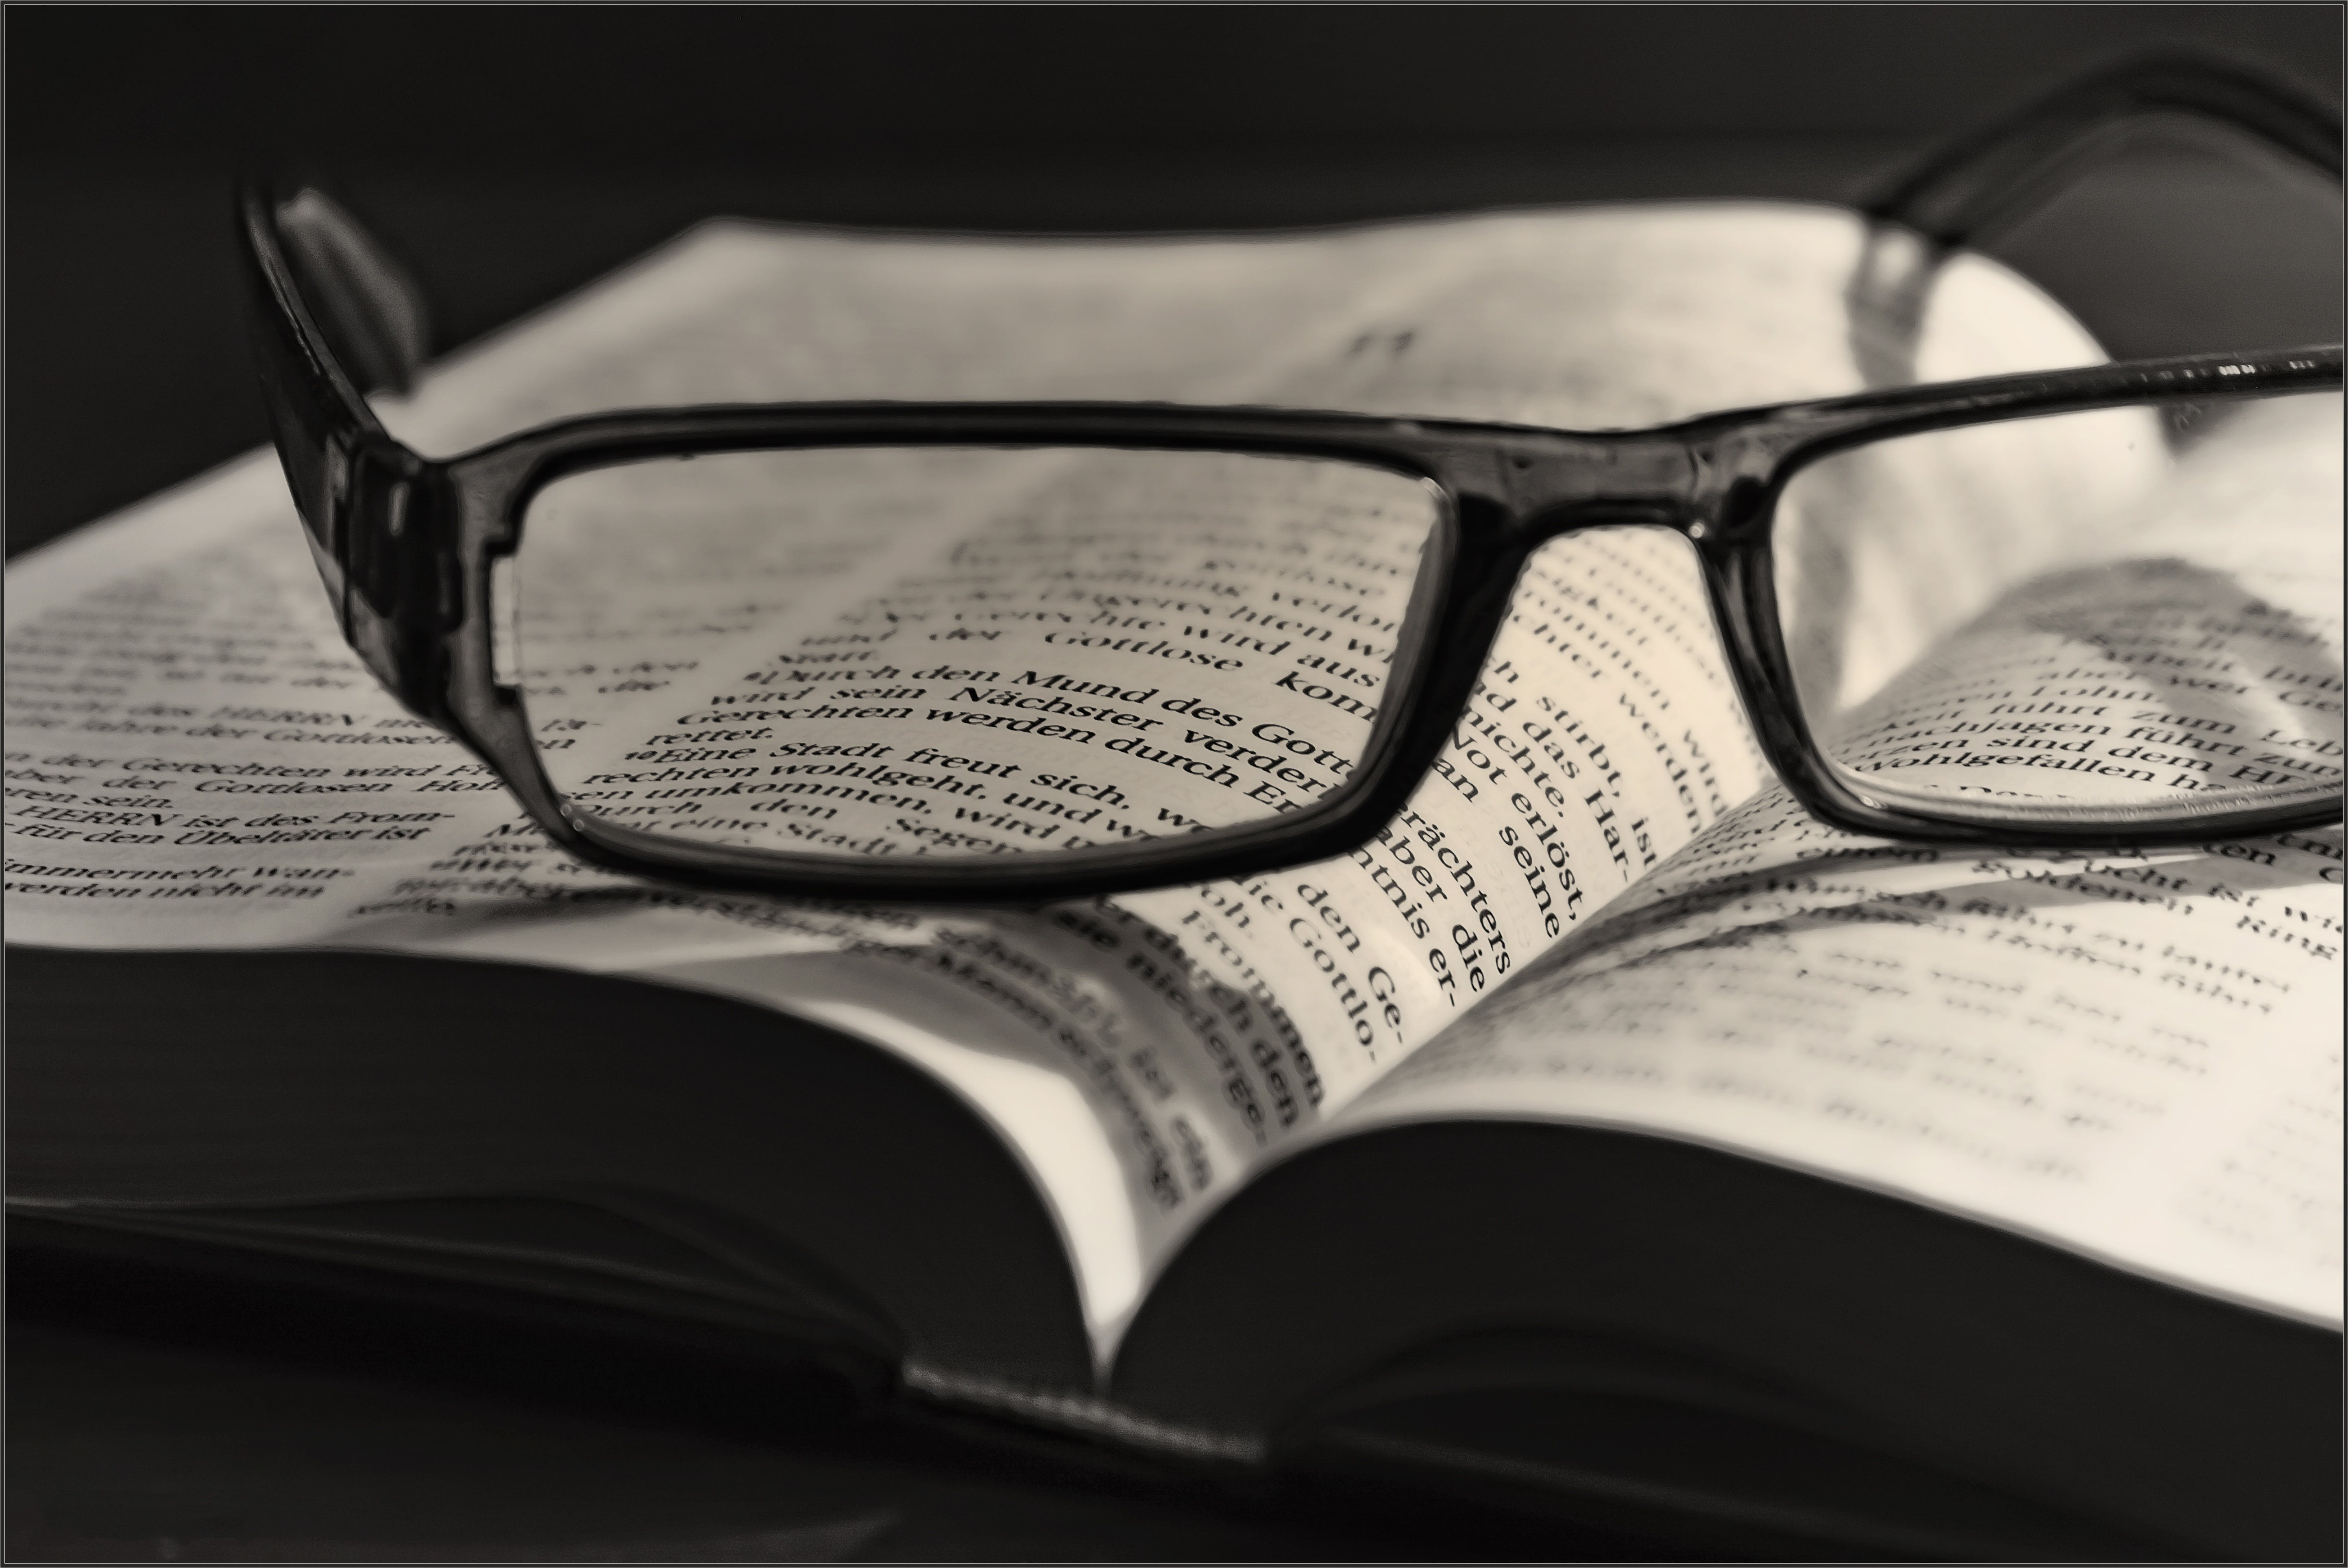 Black Eyeglasses Placed on White Book